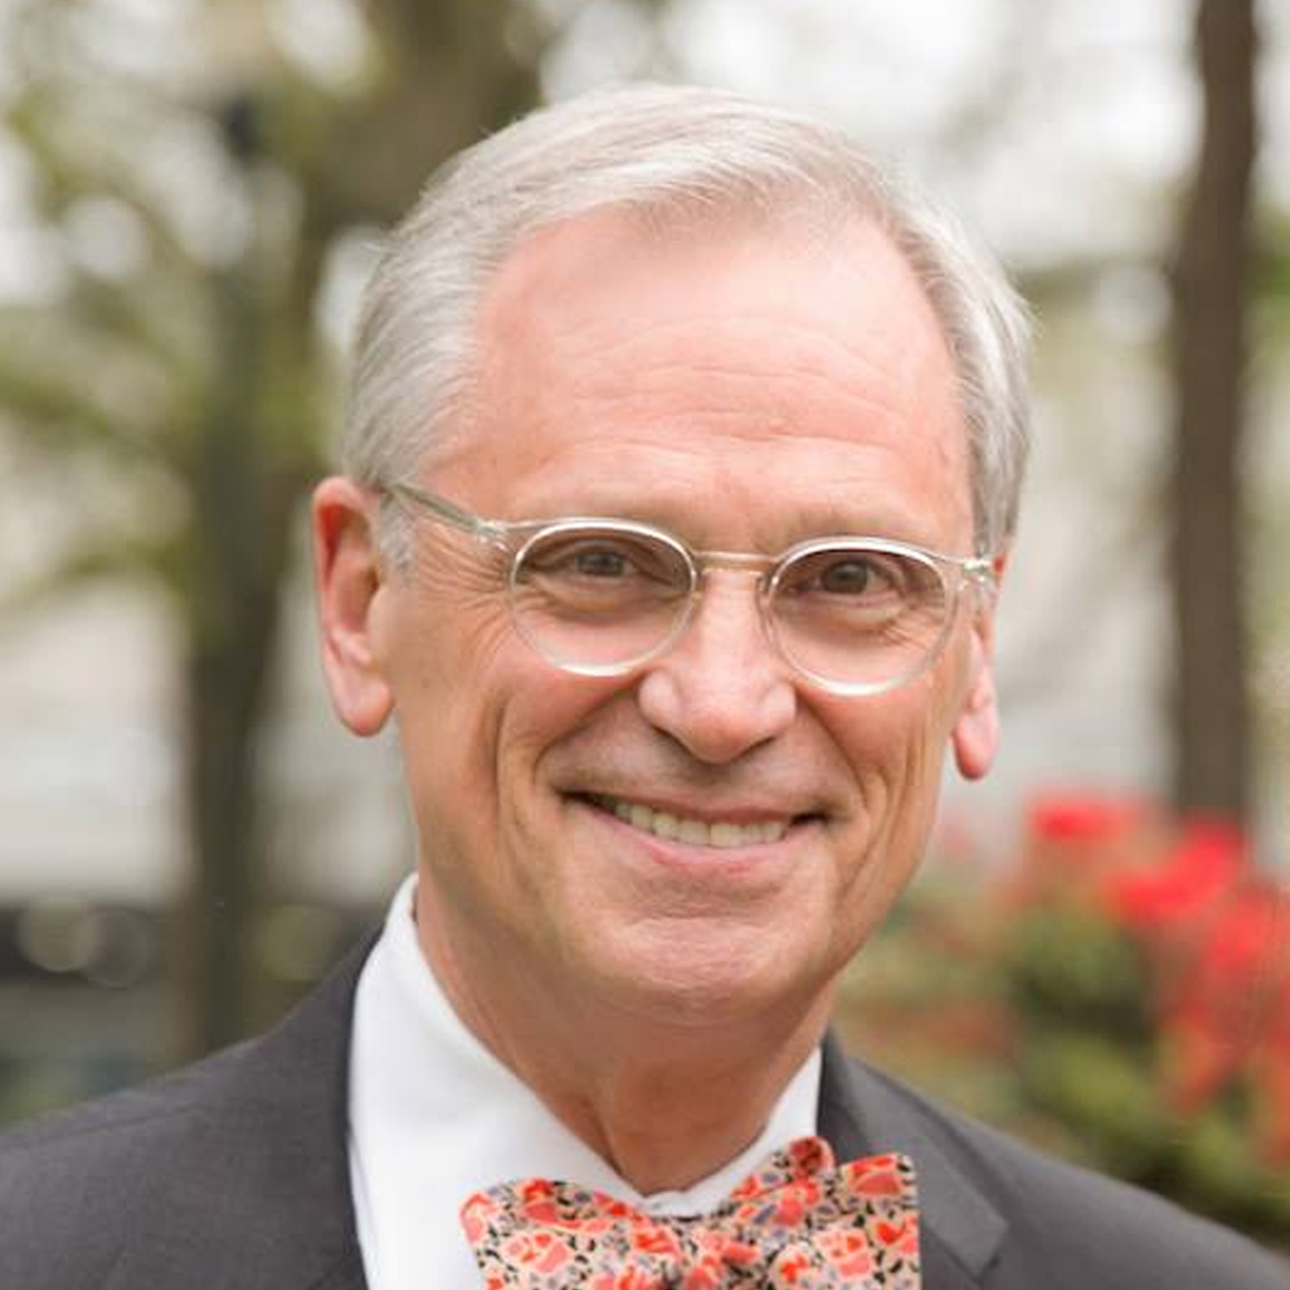 Earl Blumenauer (OR-03)  Committee: Ways and Means  Website:  https://blumenauer.house.gov/